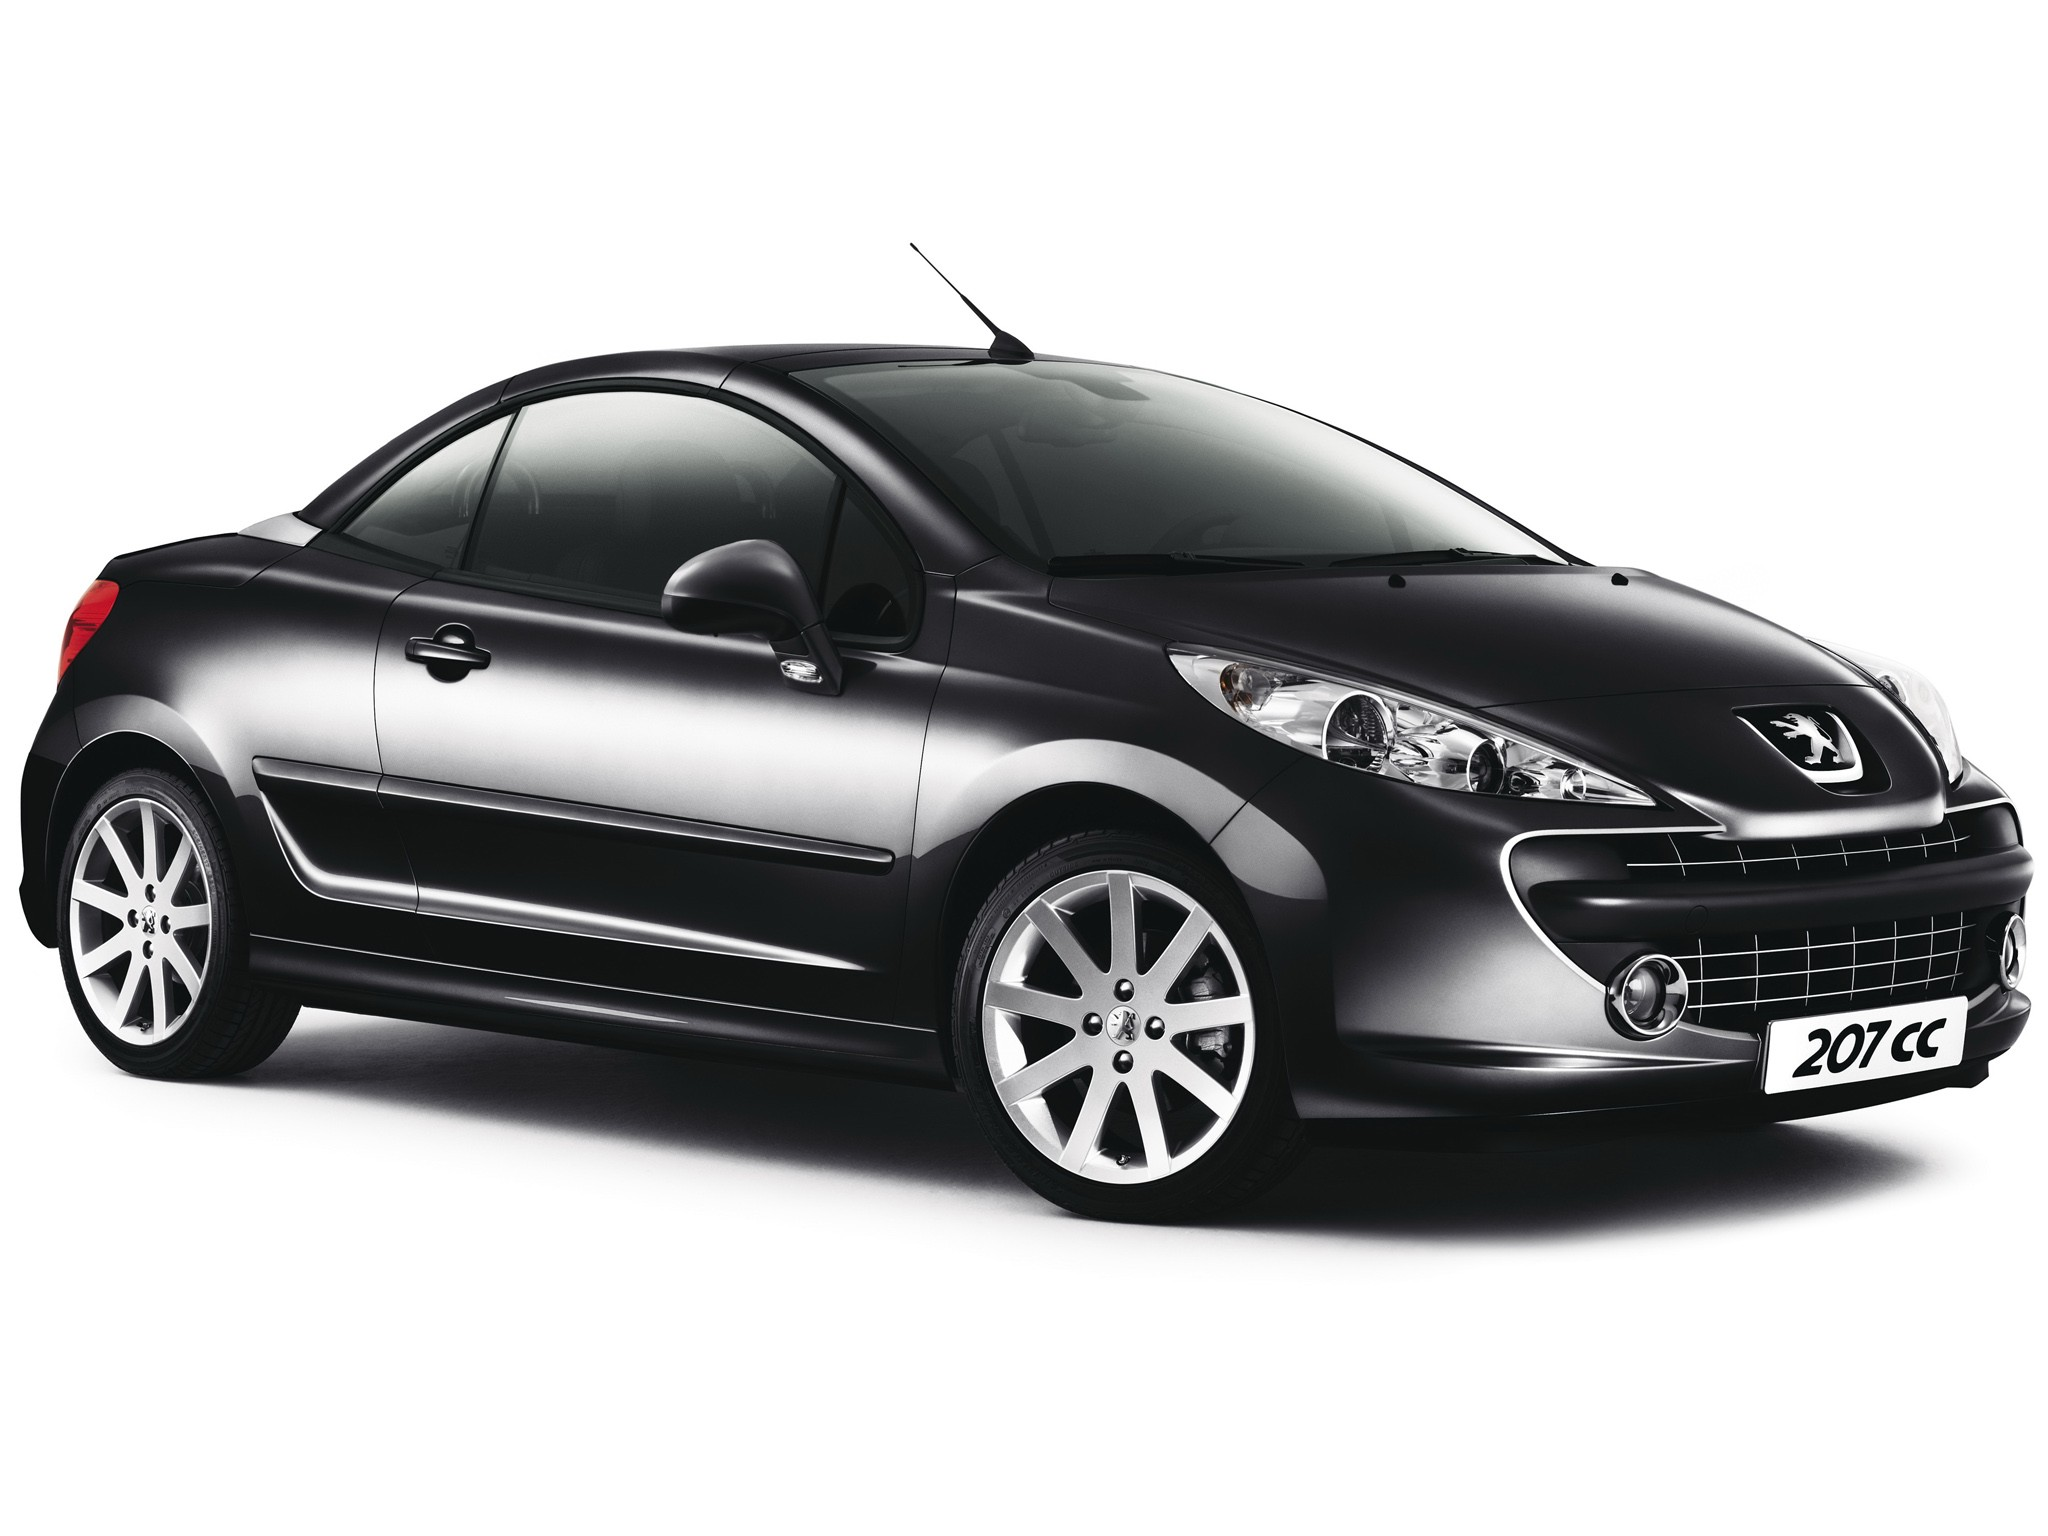 peugeot 207 cc specs photos 2007 2008 2009. Black Bedroom Furniture Sets. Home Design Ideas